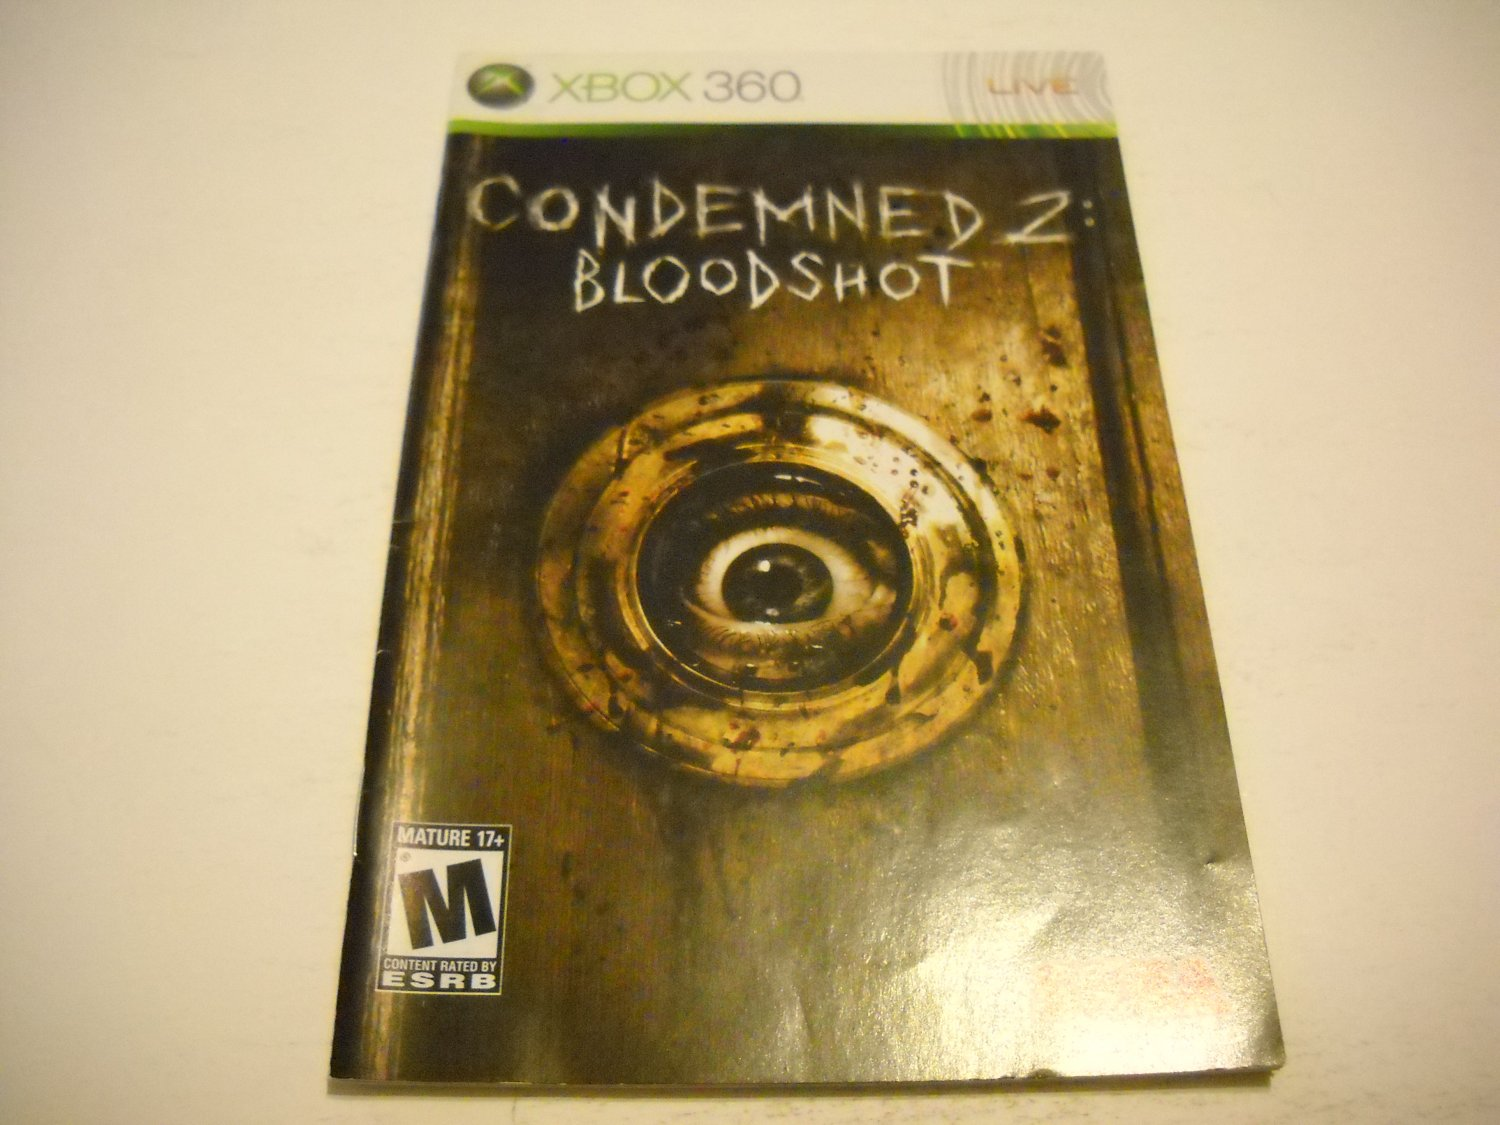 Manual ONLY ~  for Condemned 2 Bloodshot   - Xbox 360 Instruction Booklet